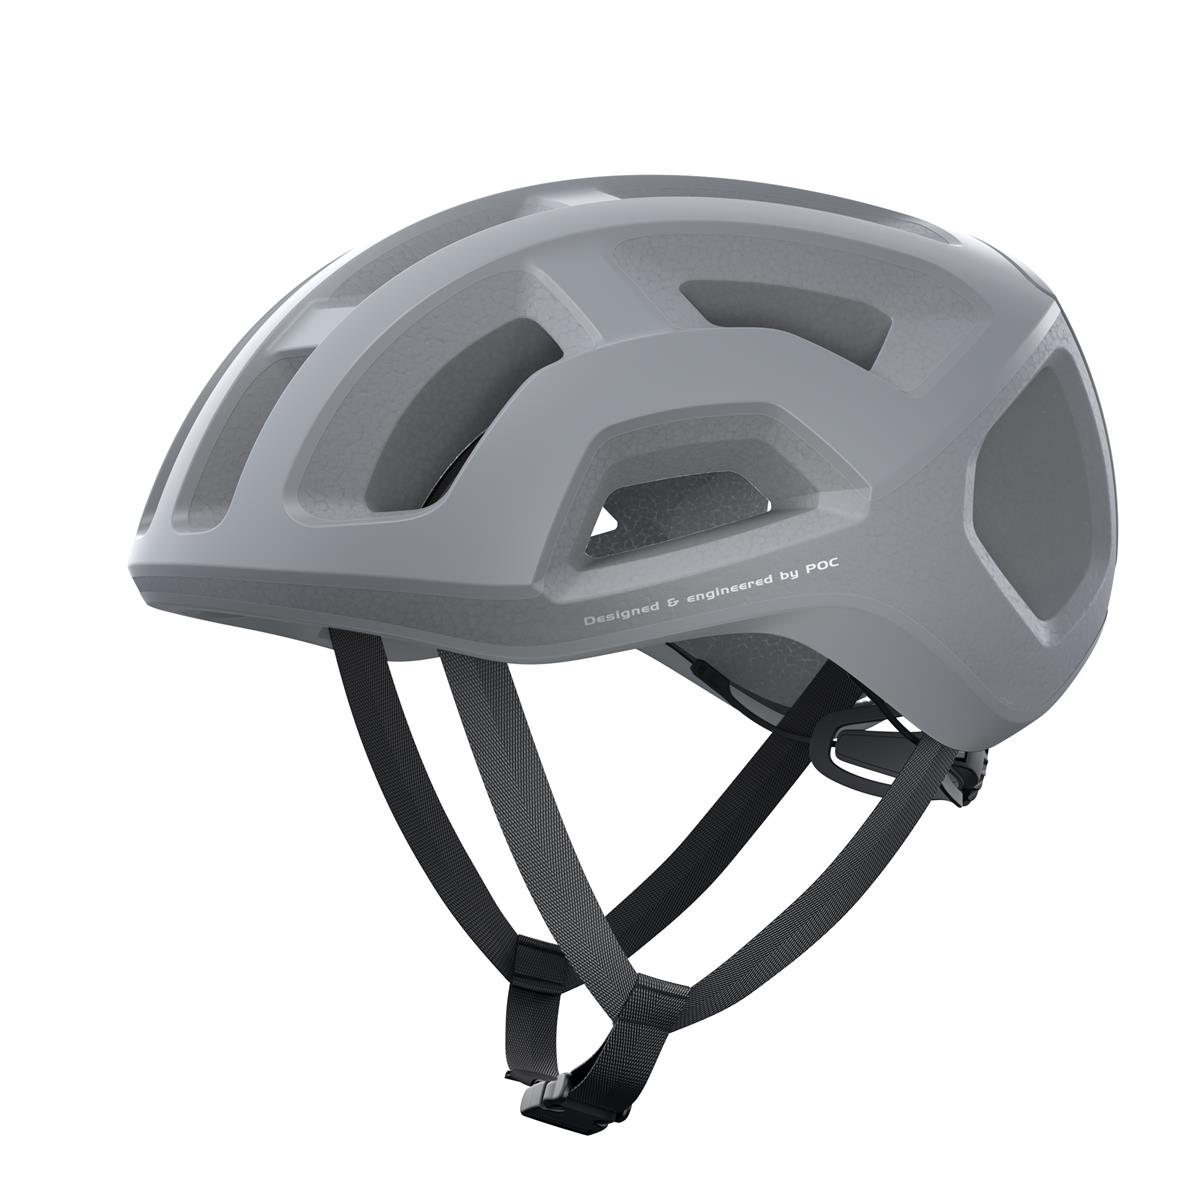 Casco Ventral Lite Granite Grey Matt taglia S (50-56)